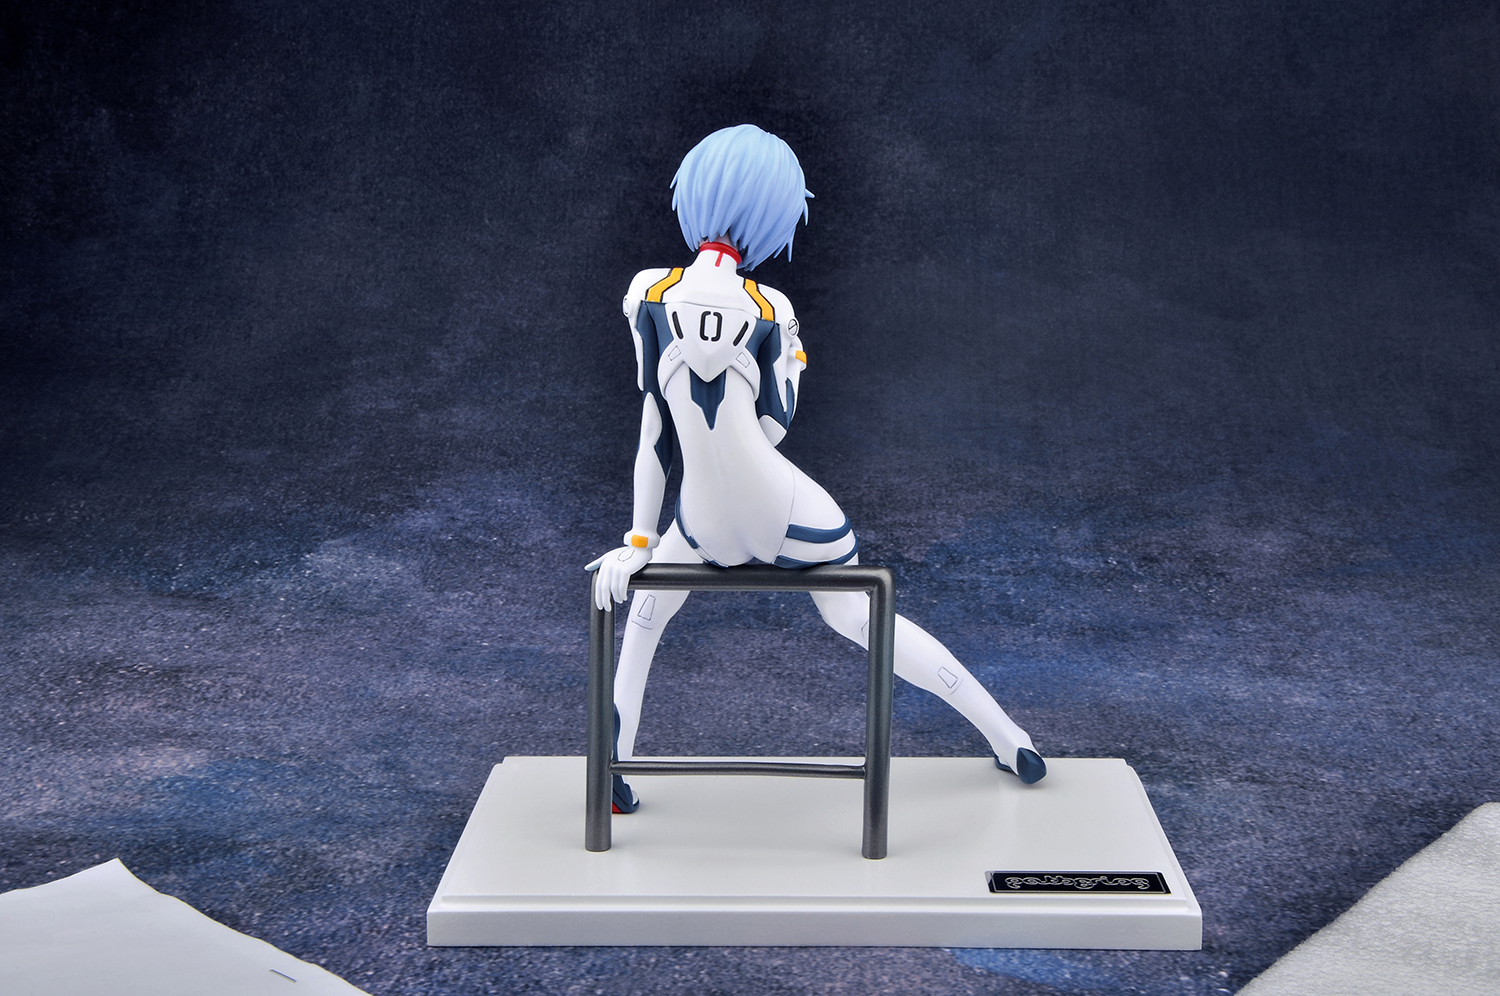 The Blue-Haired EVA Pilot Receives a New Figure haruhichan.com Neon Genesis Evangelion Ayanami Rei anime 09